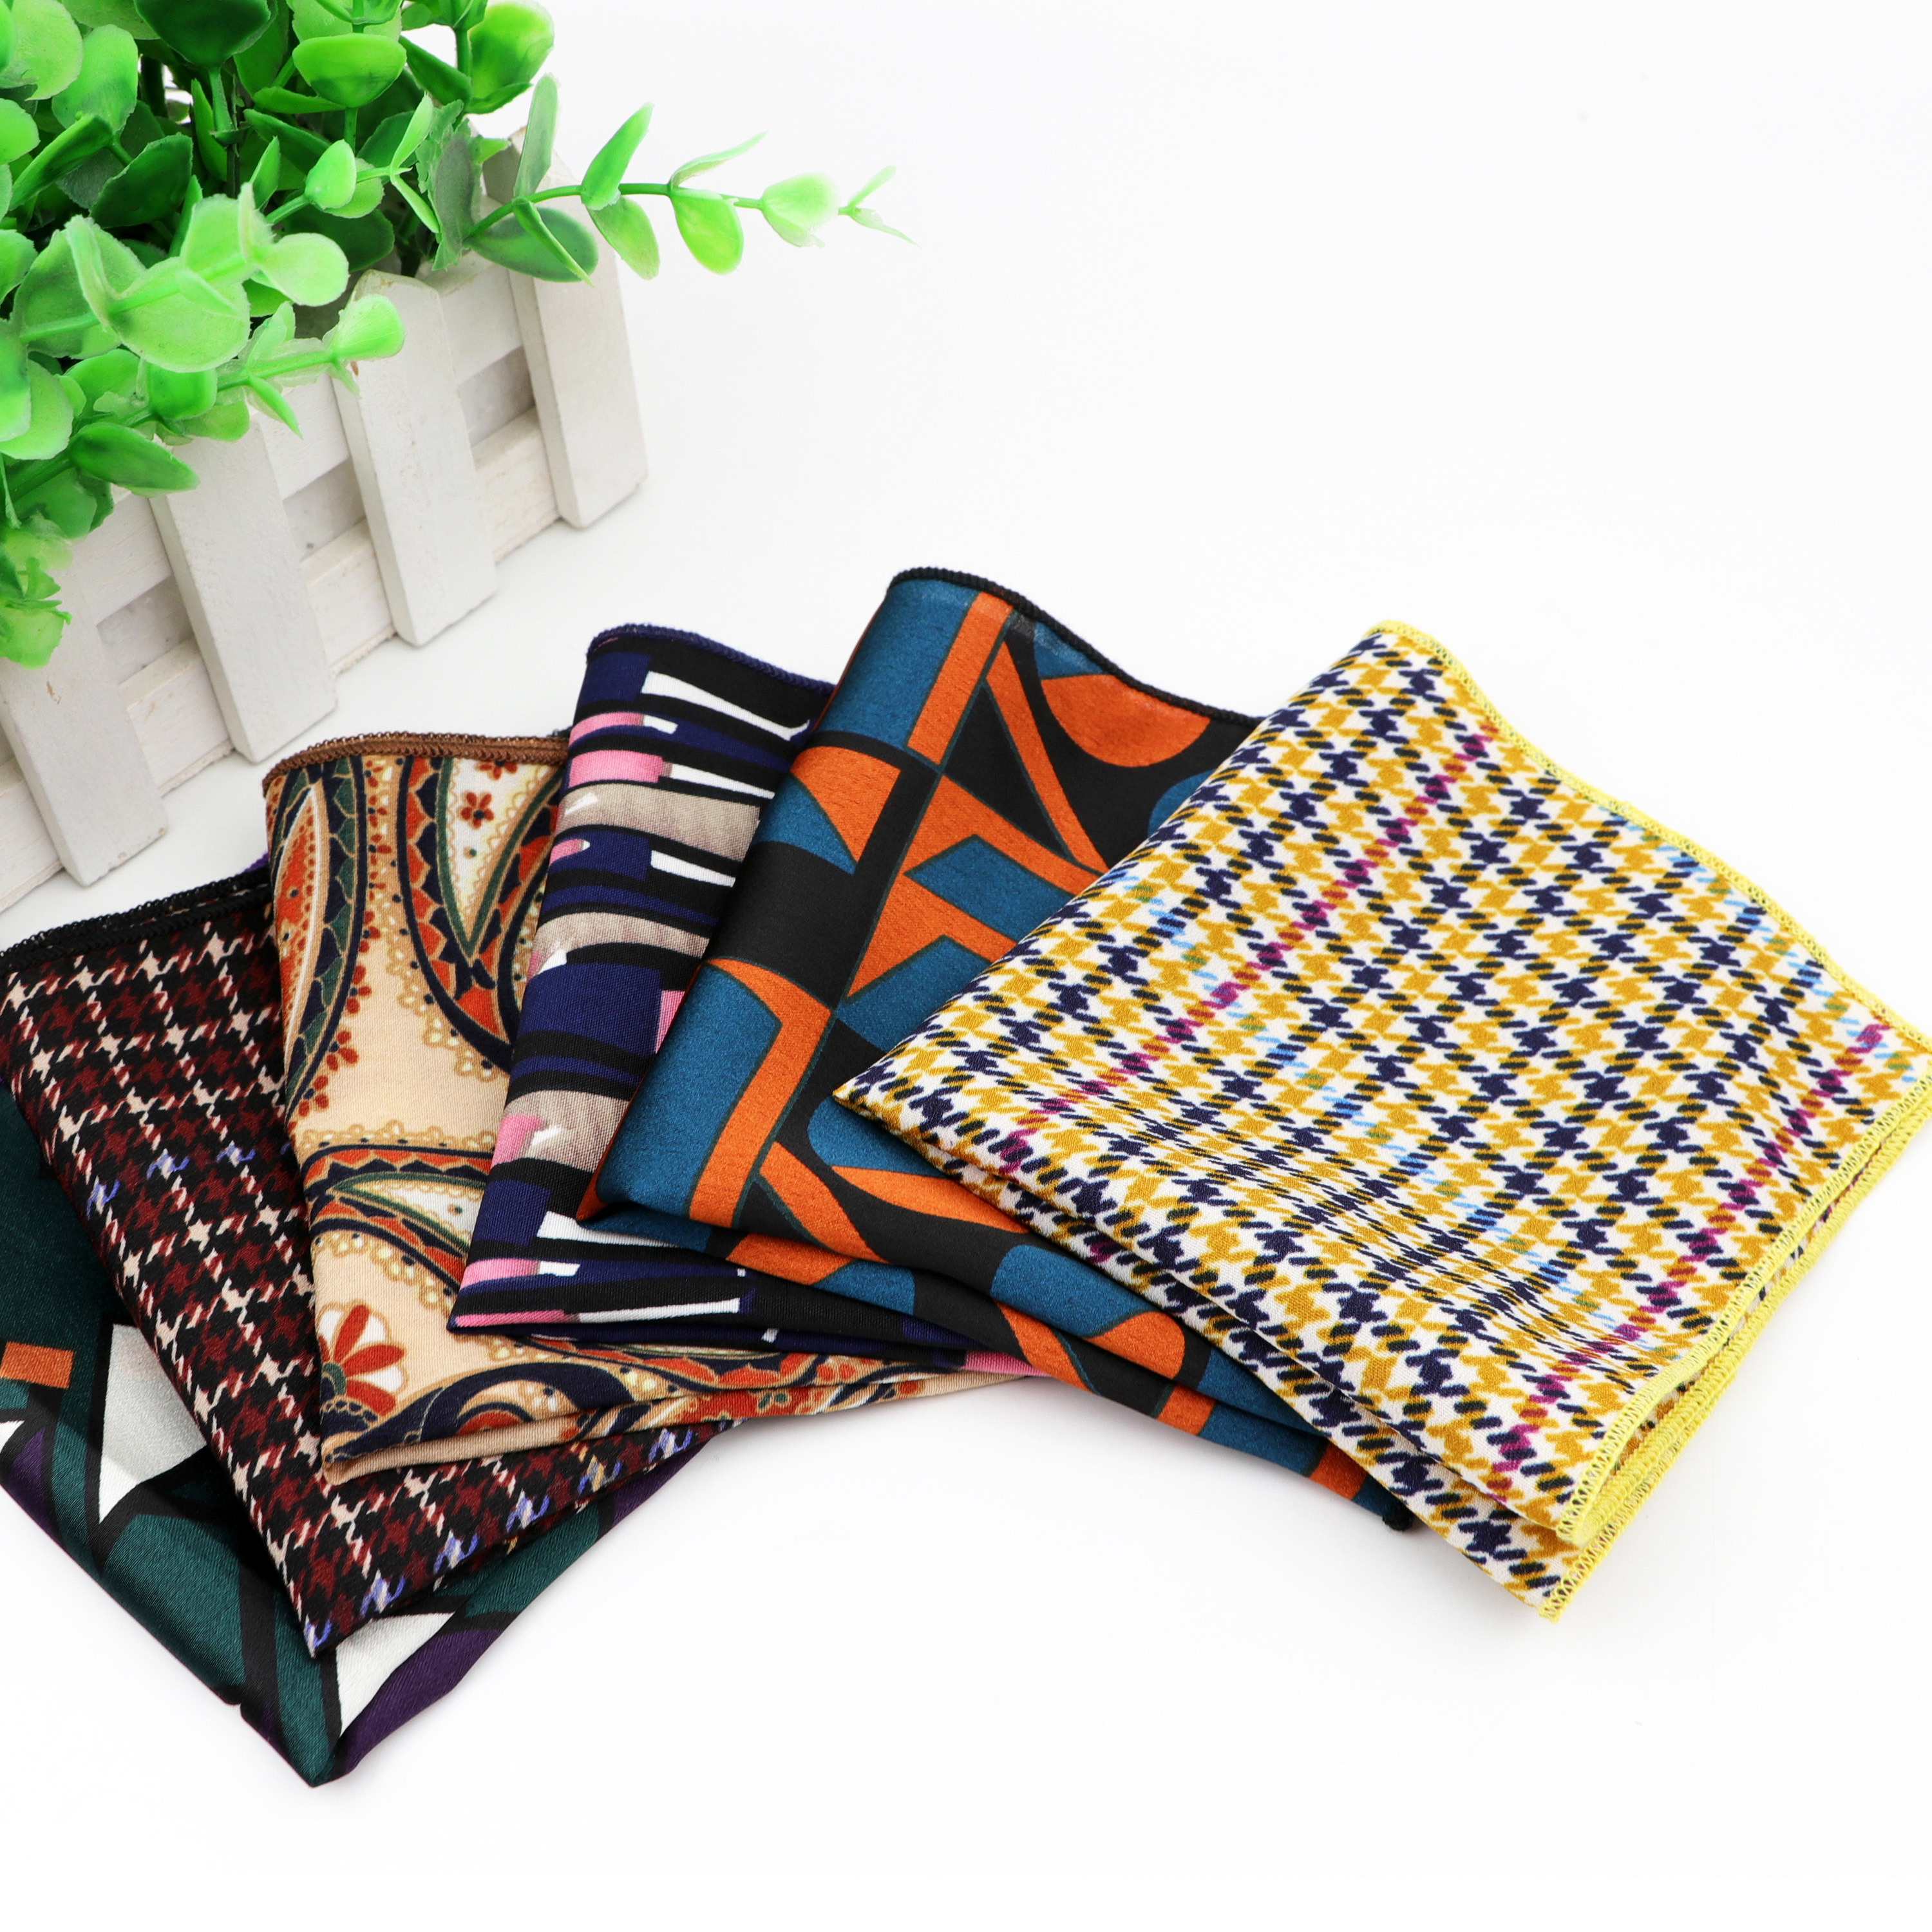 Chiffon Handkerchief Vintage Polyester Hankies Men's Pocket Square Handkerchiefs Striped Geometric Scarves